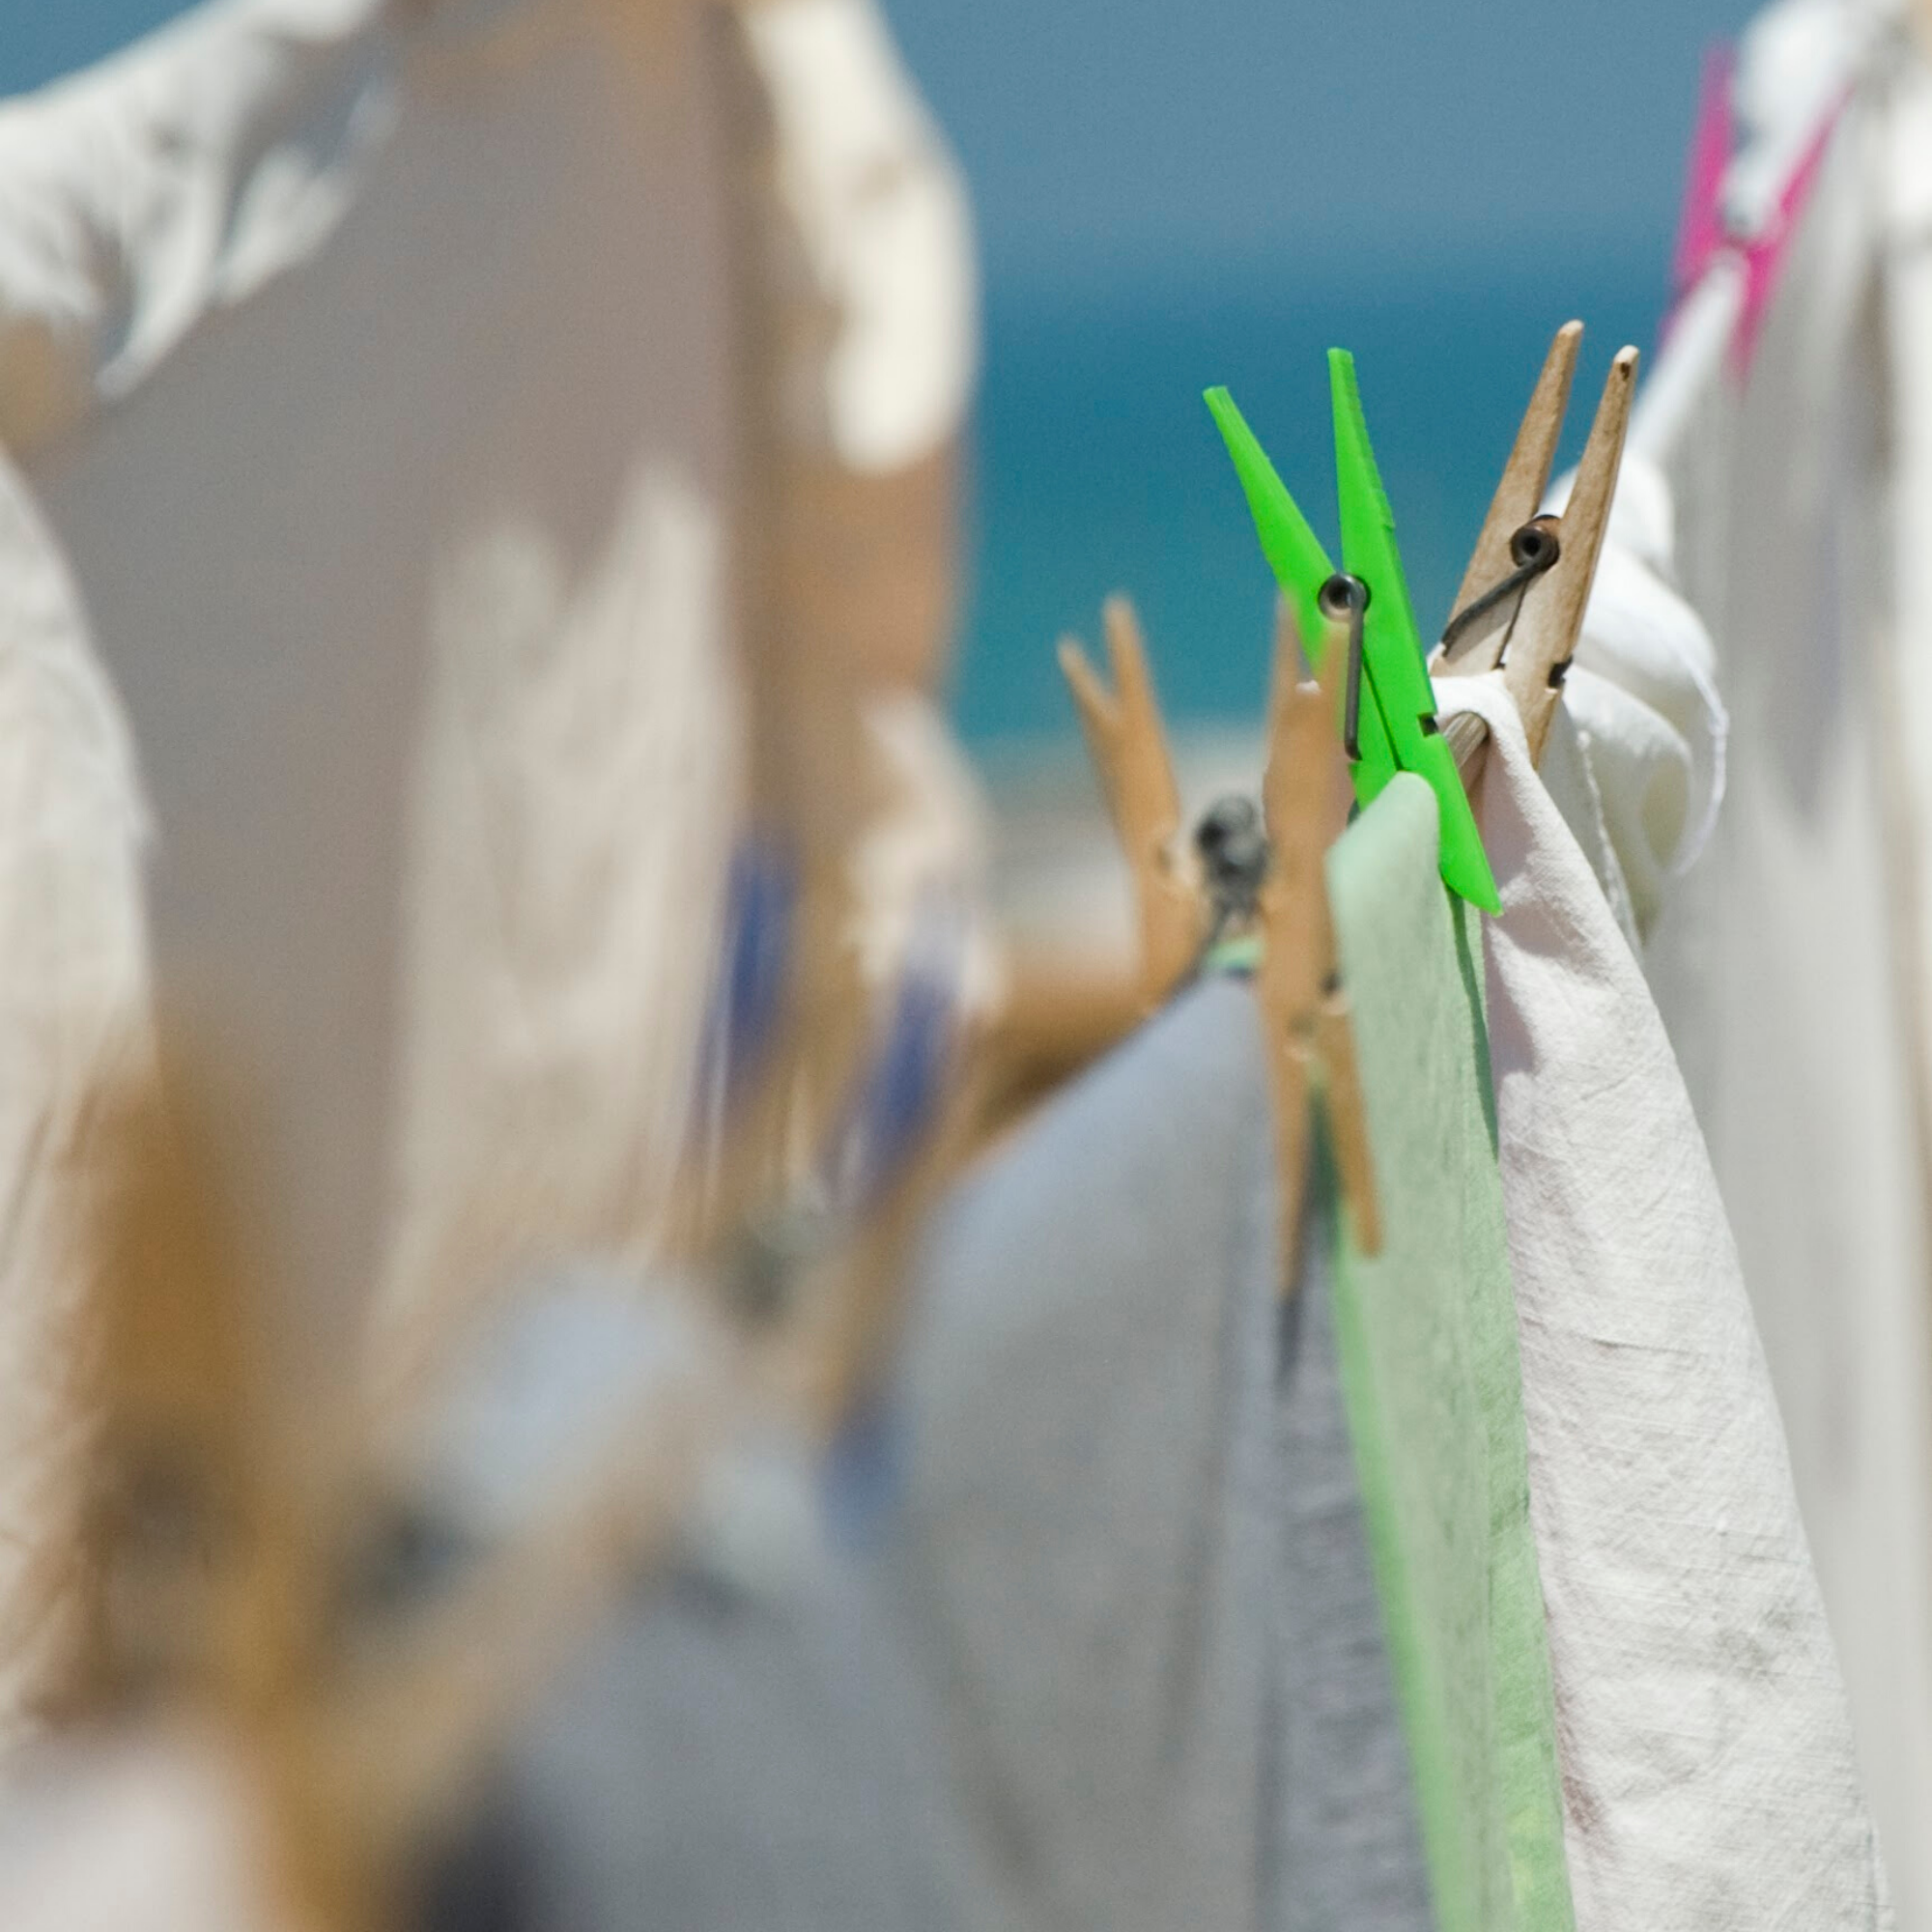 hang dry clothes